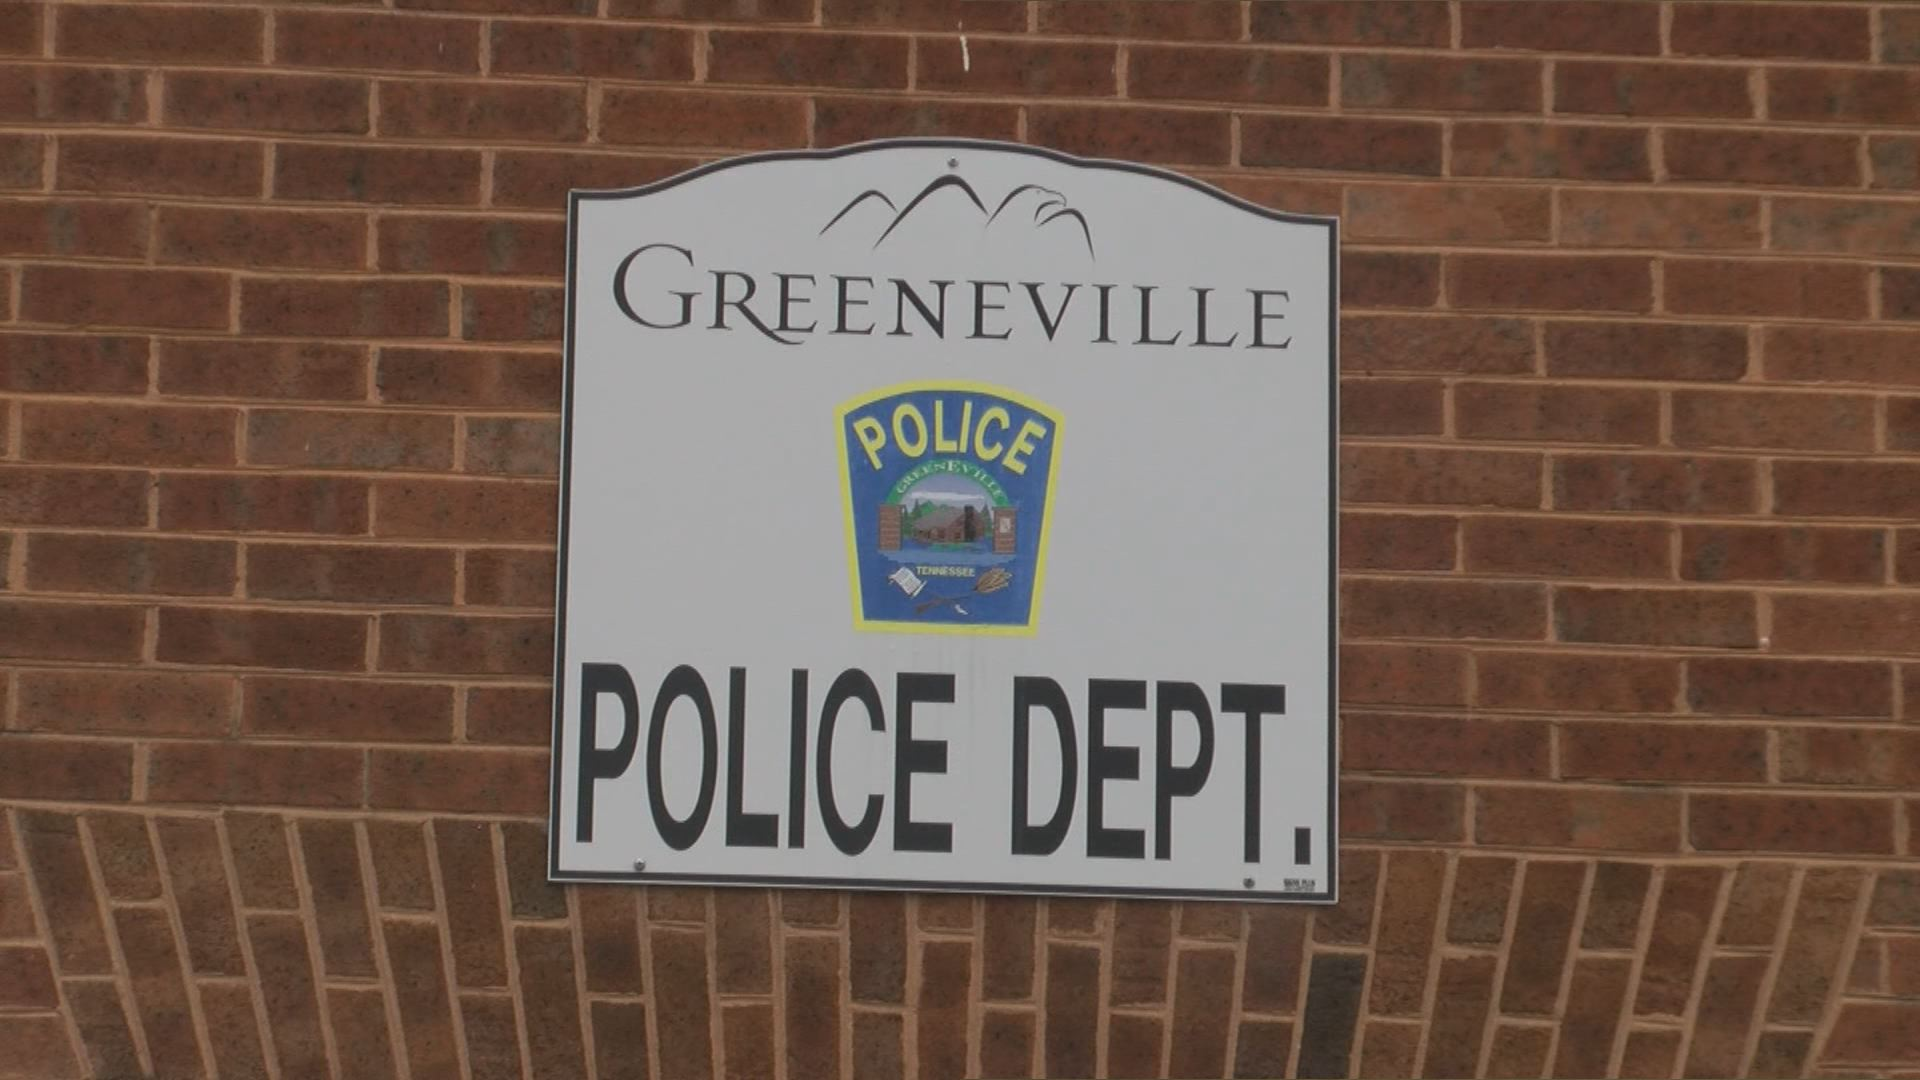 greeneville police department 2_1558649213162.jpg.jpg